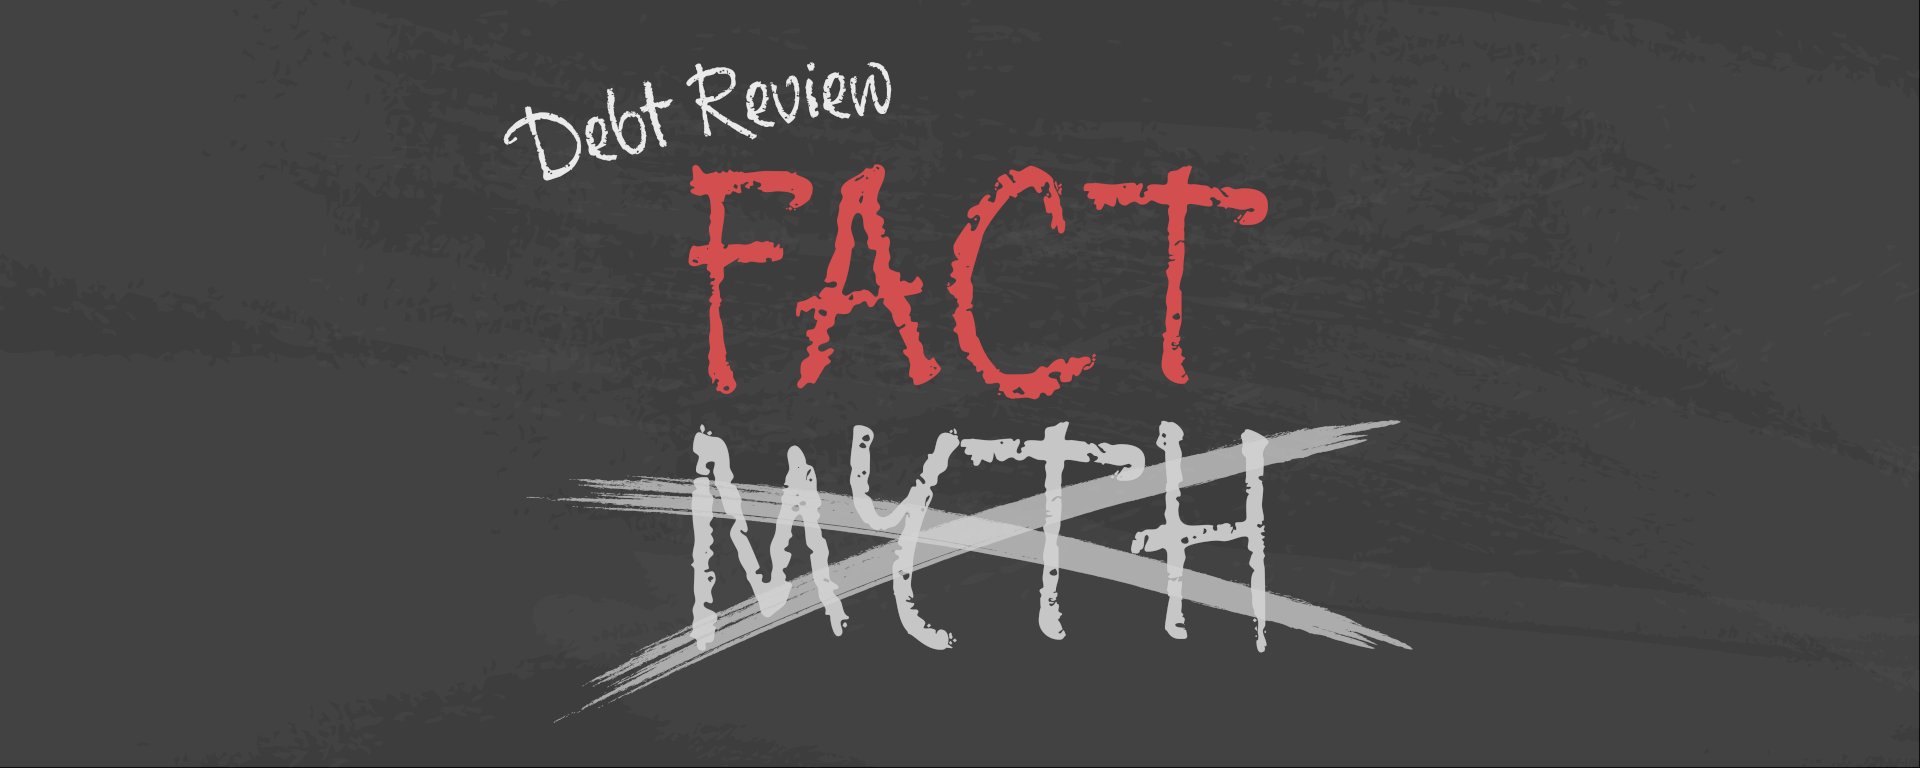 Debt review myths